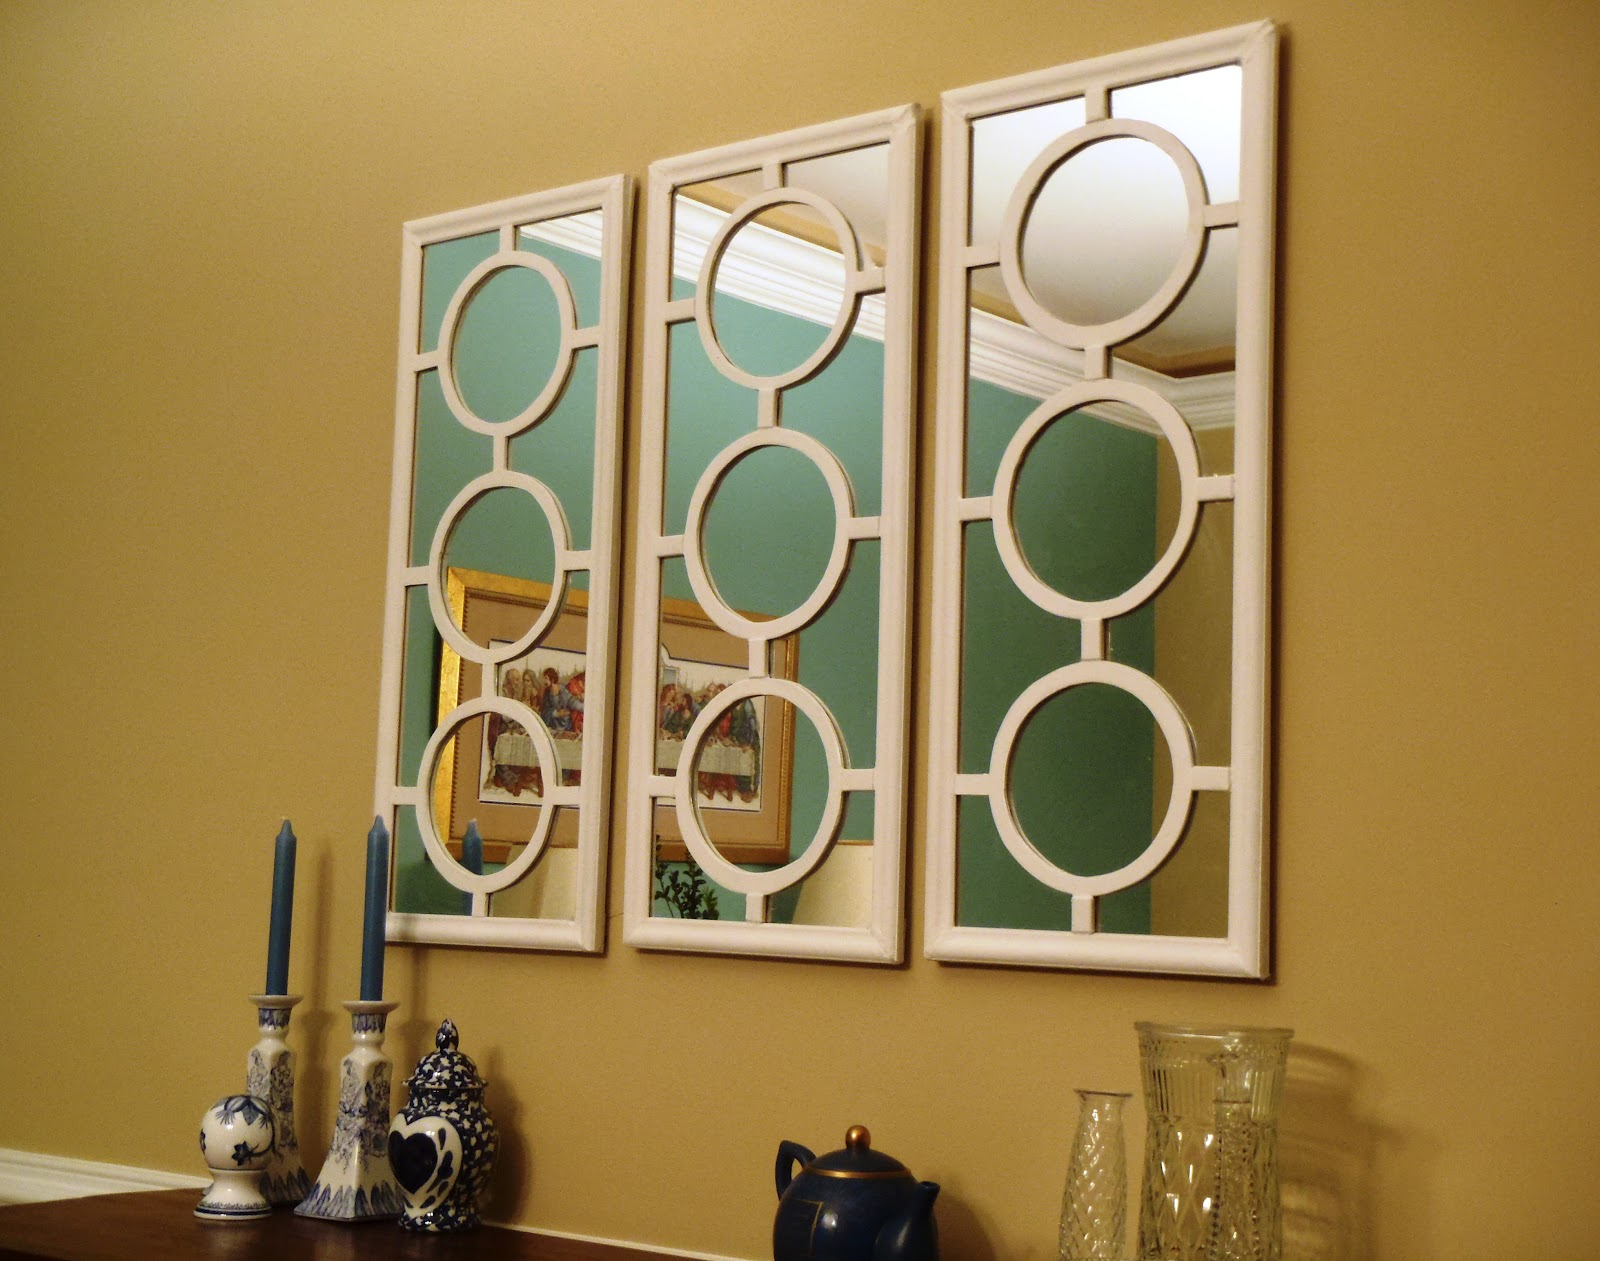 Lazy Liz on Less: Dining wall mirror decor